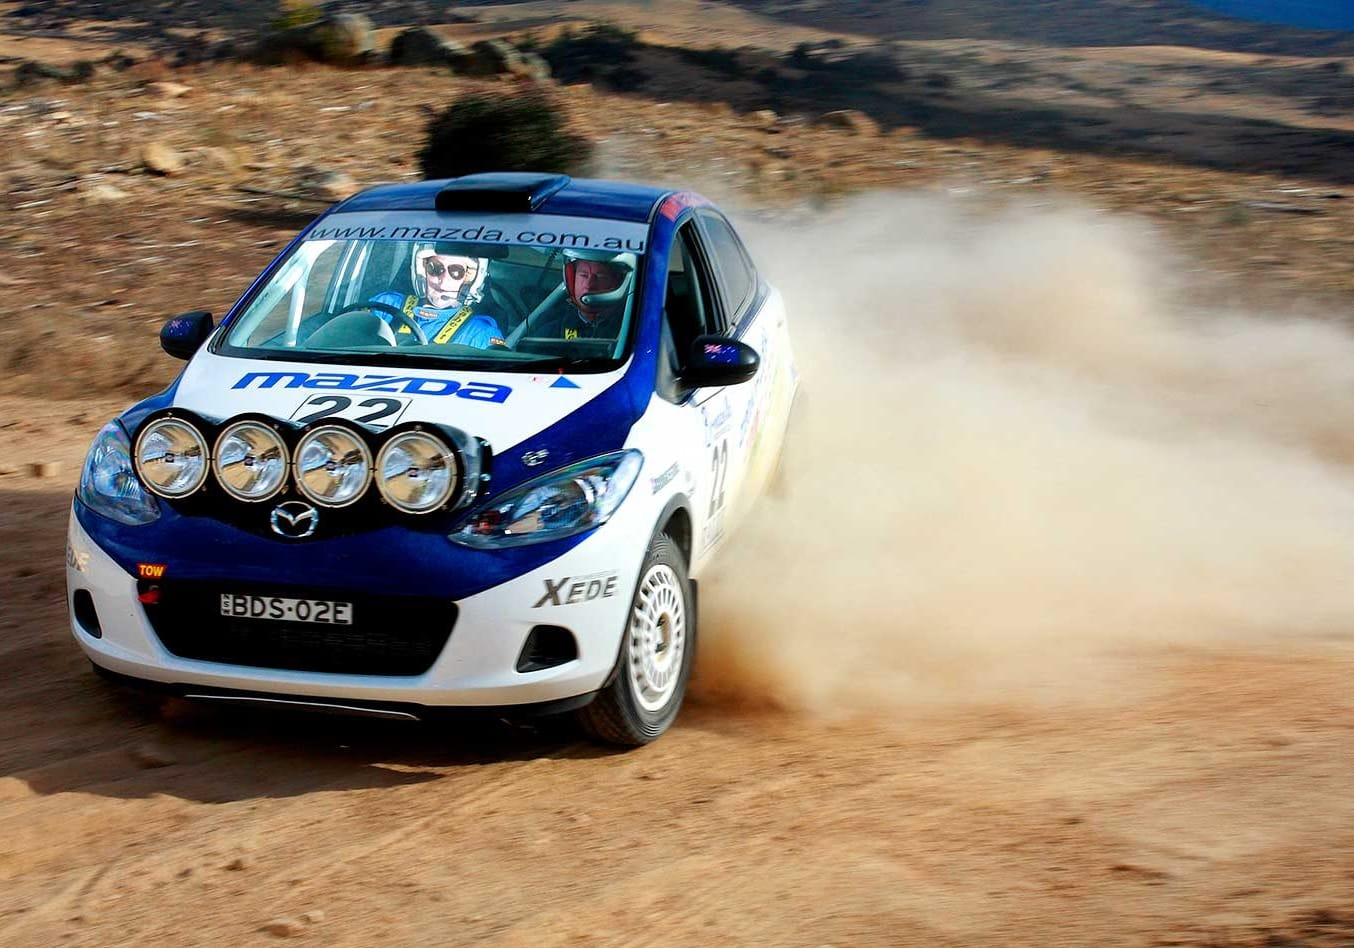 How to drive a rally car